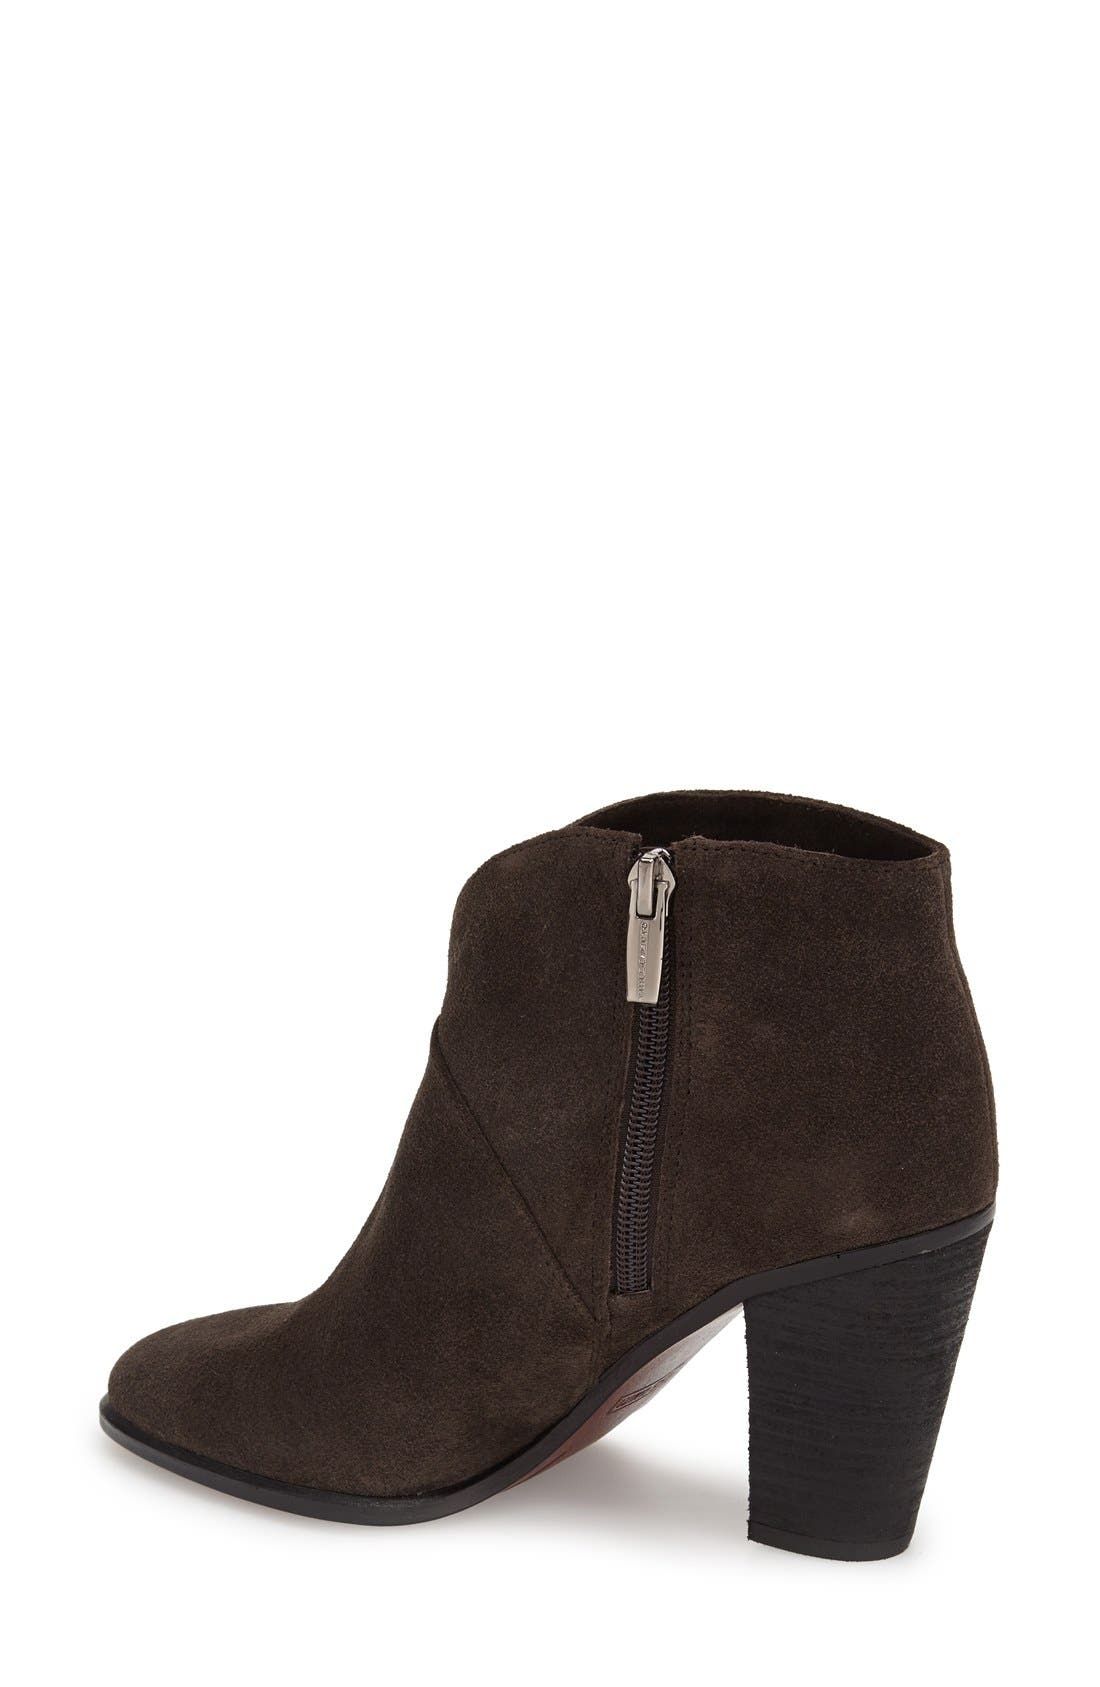 Alternate Image 2  - Vince Camuto 'Franell' Western Bootie (Women)